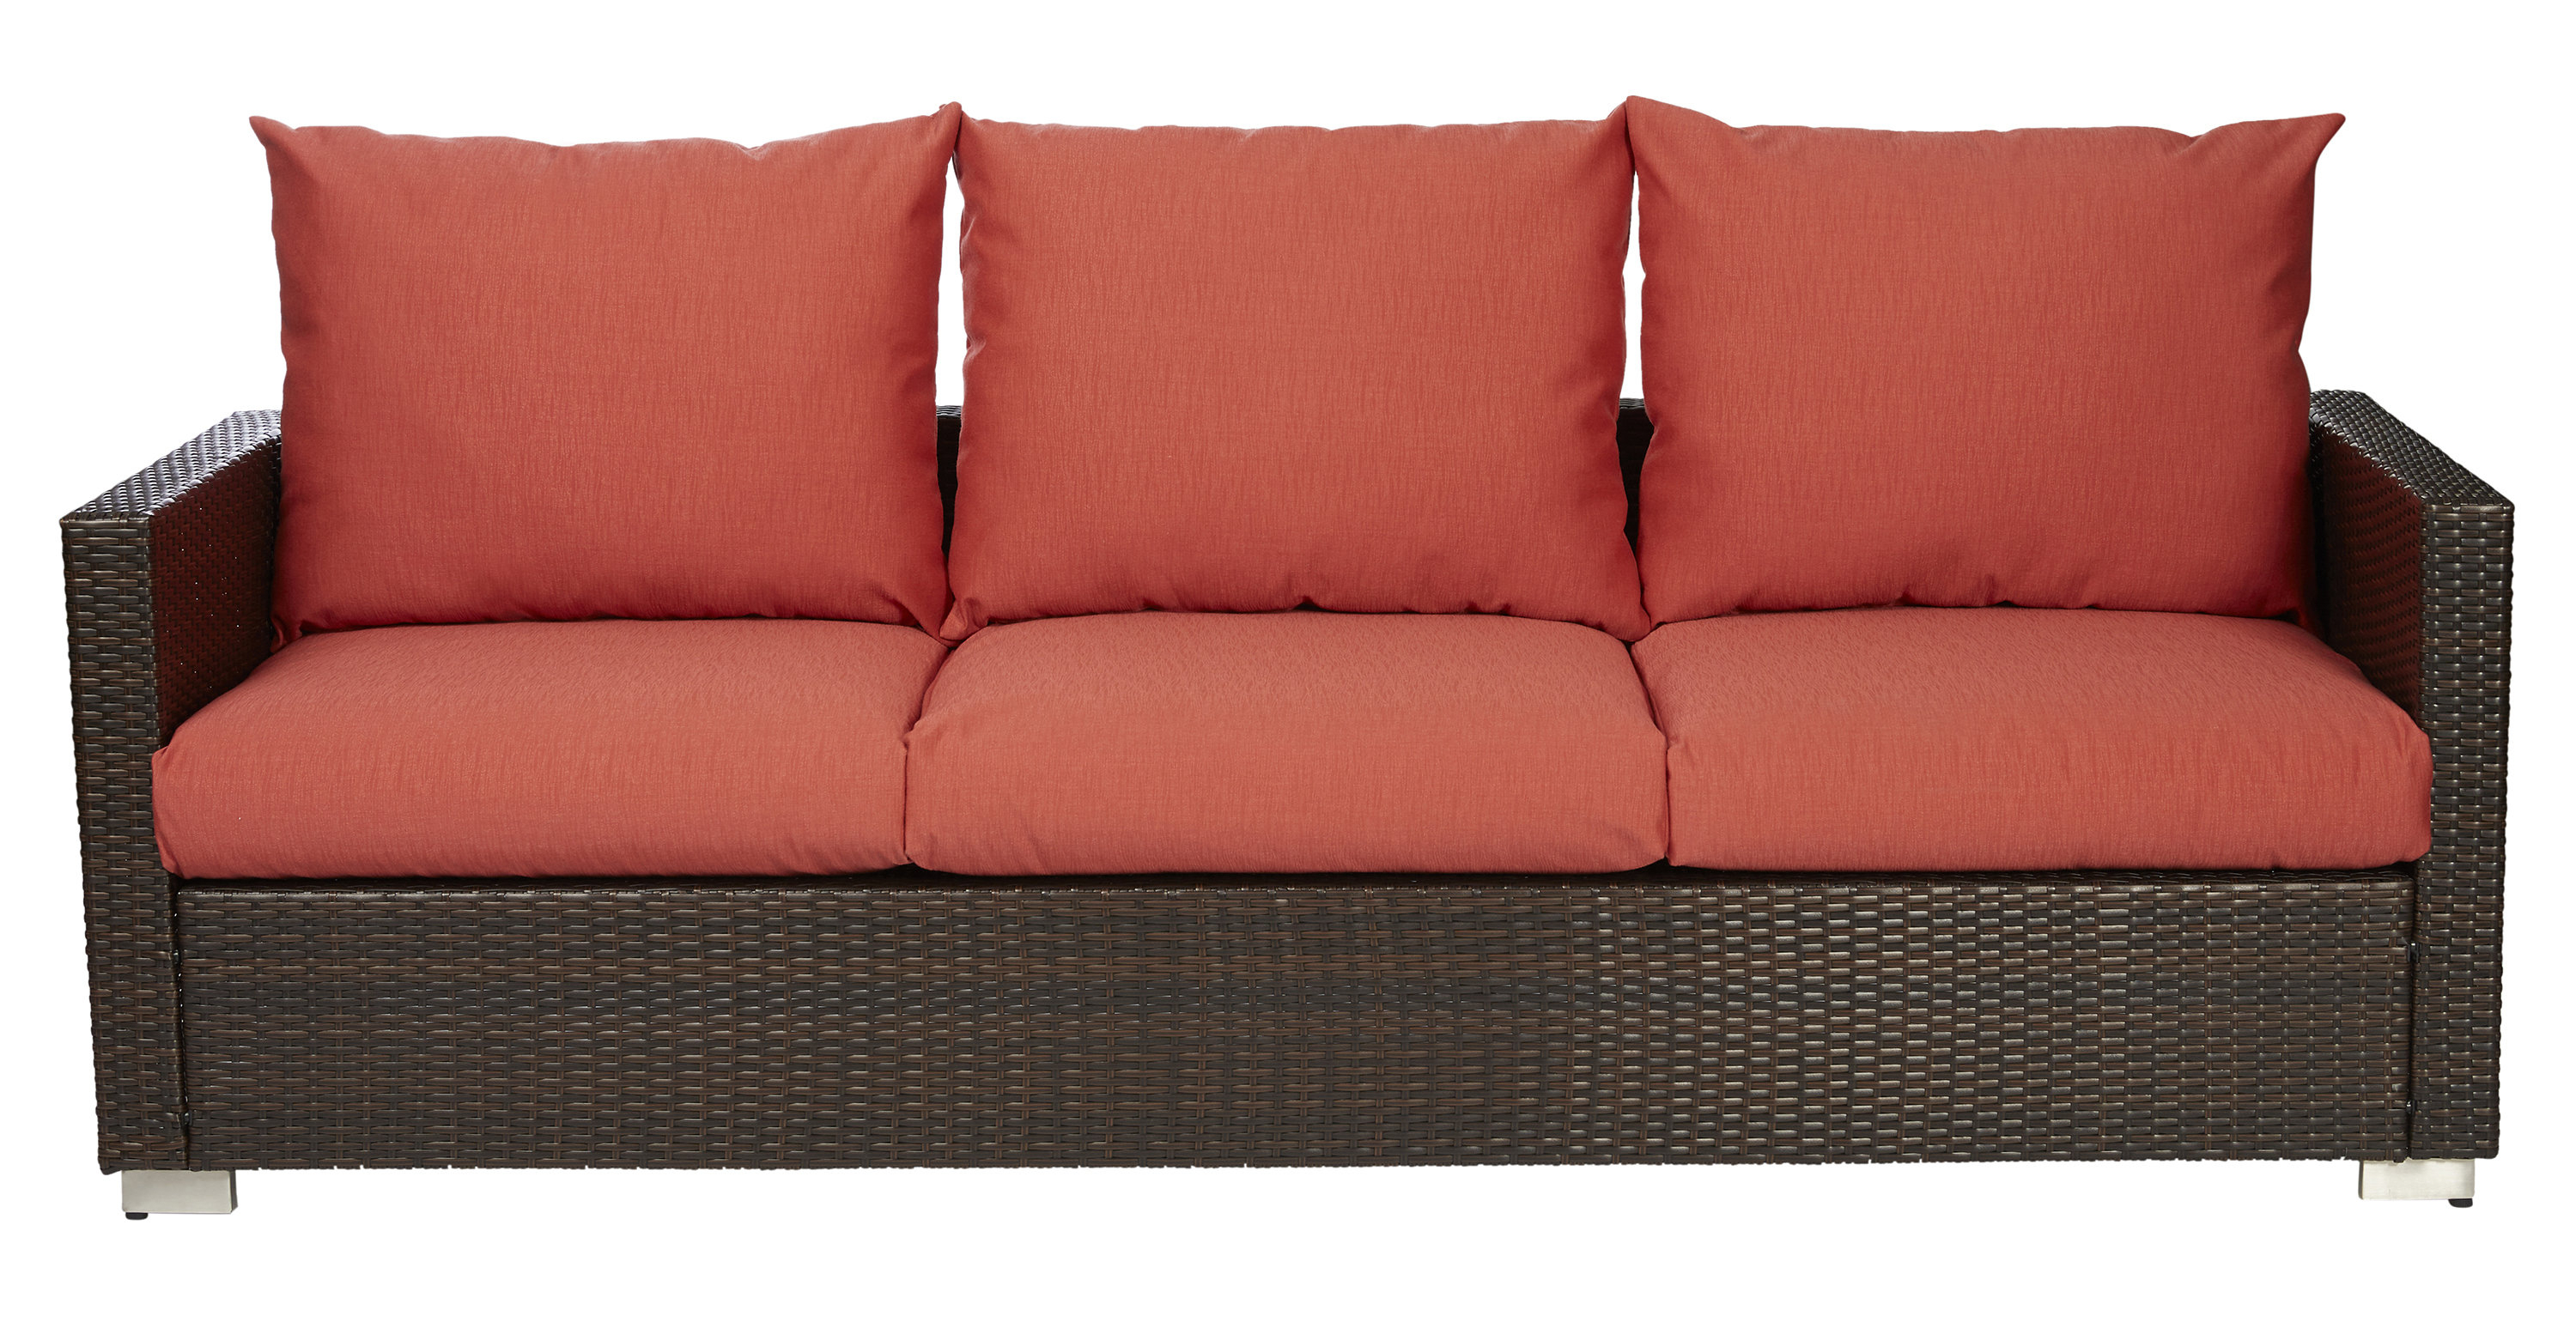 Stockwell Patio Sofas With Cushions Inside 2020 Mcmanis Patio Sofa With Cushion (View 12 of 20)